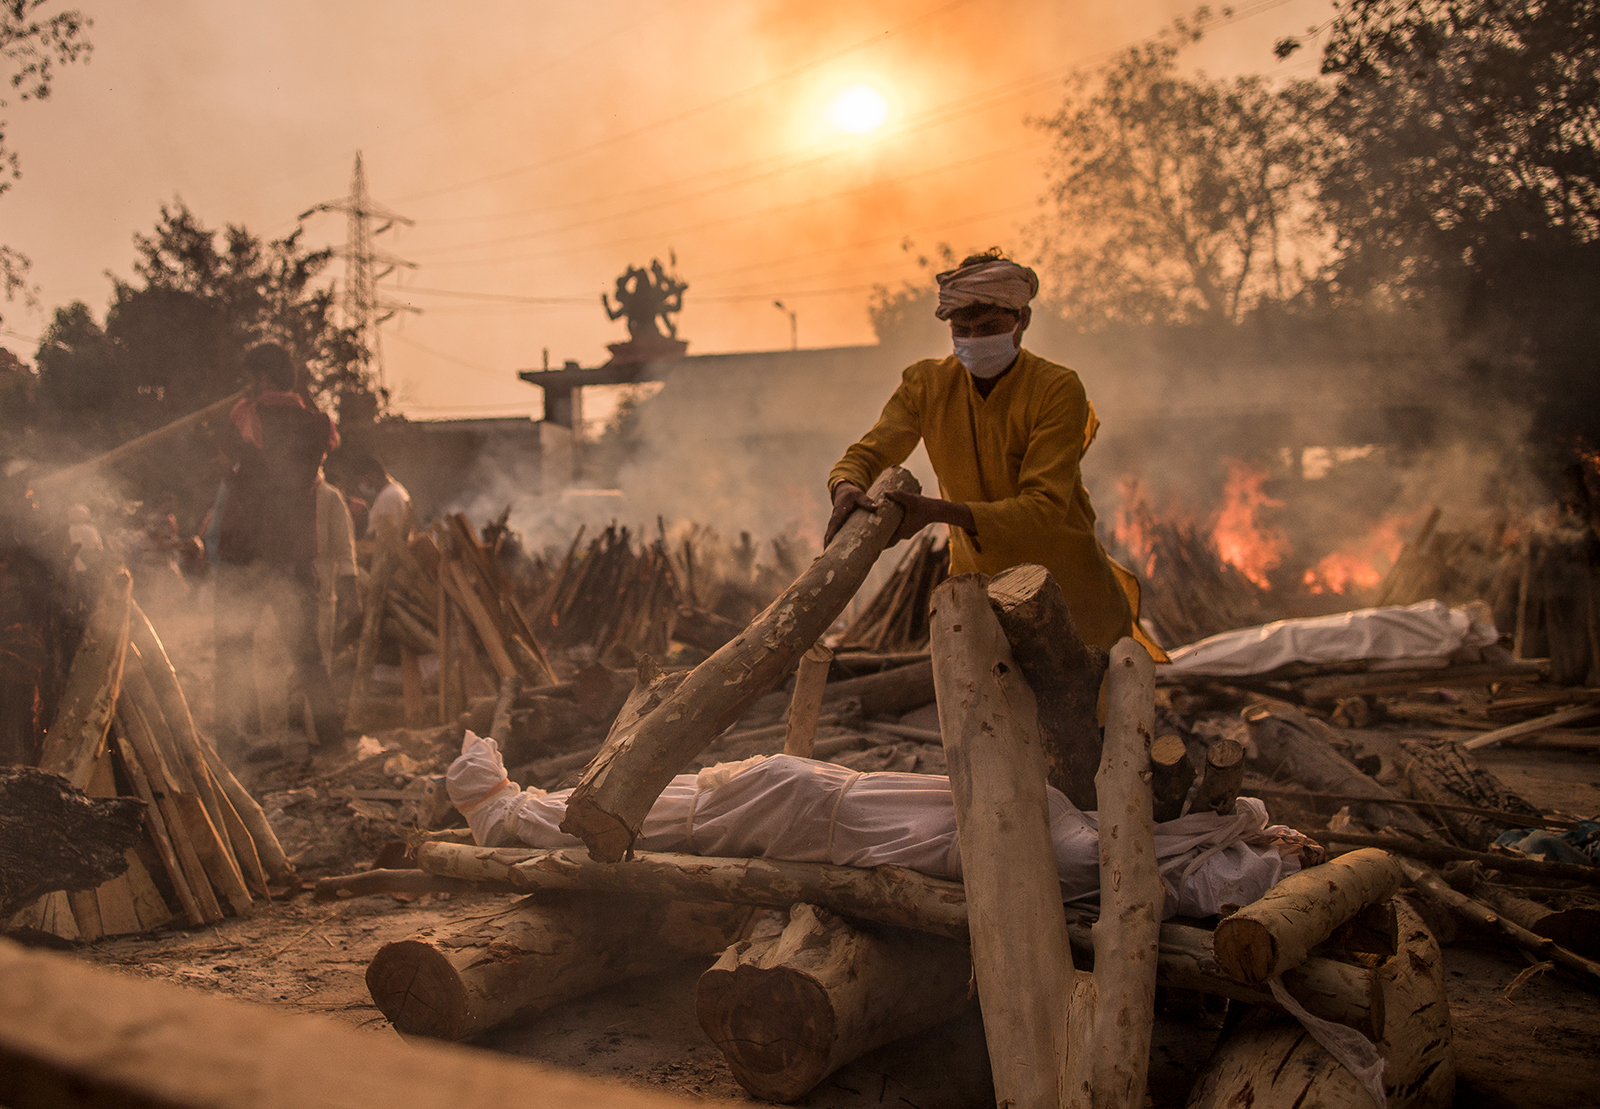 A priest performs the last rites of a patient who died of Covid-19 amid burning funeral pyres on May 1, in New Delhi, India.